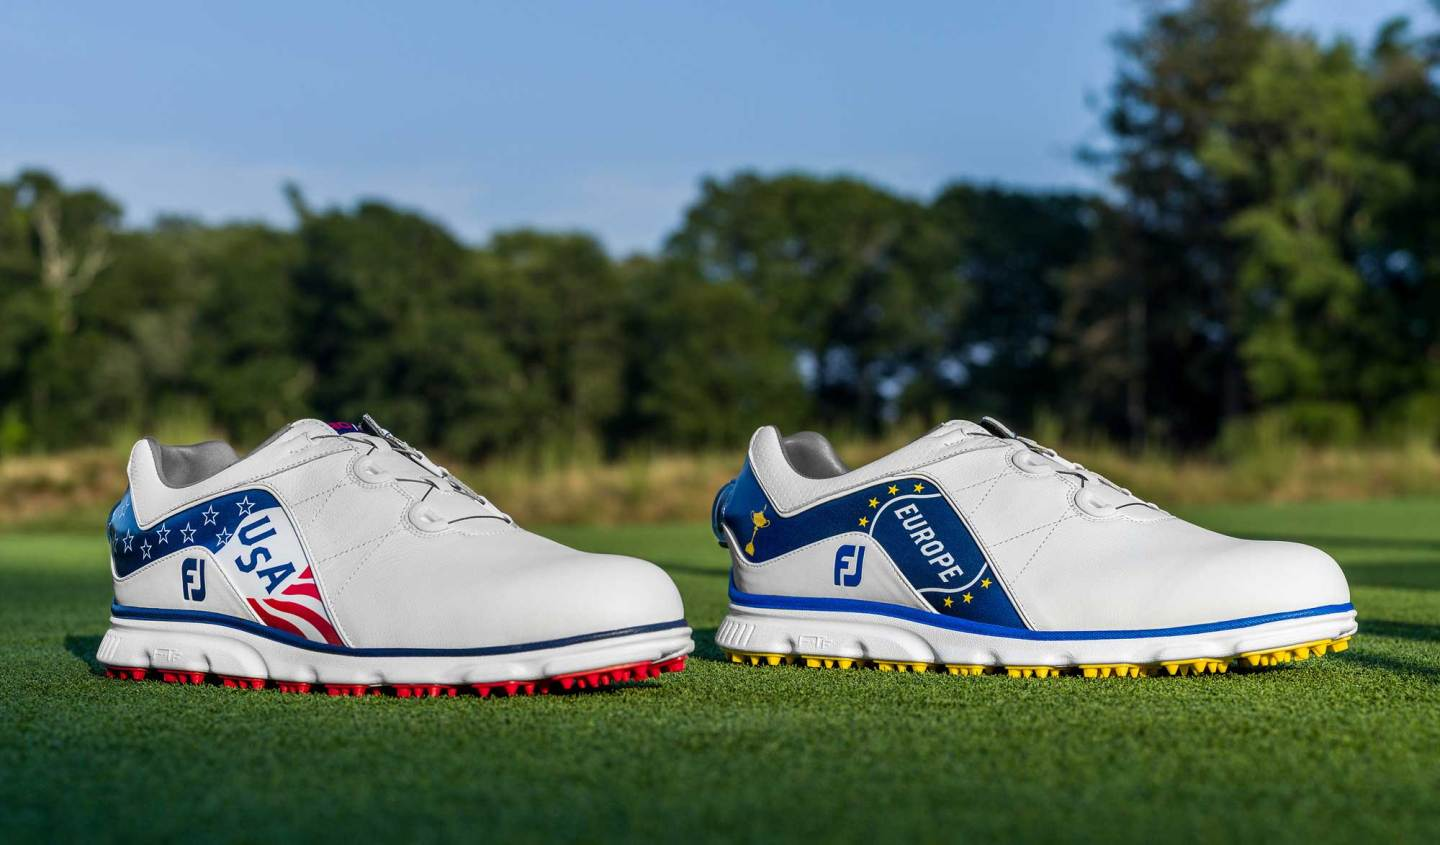 ryder cup shoes justin thomas webb simpson